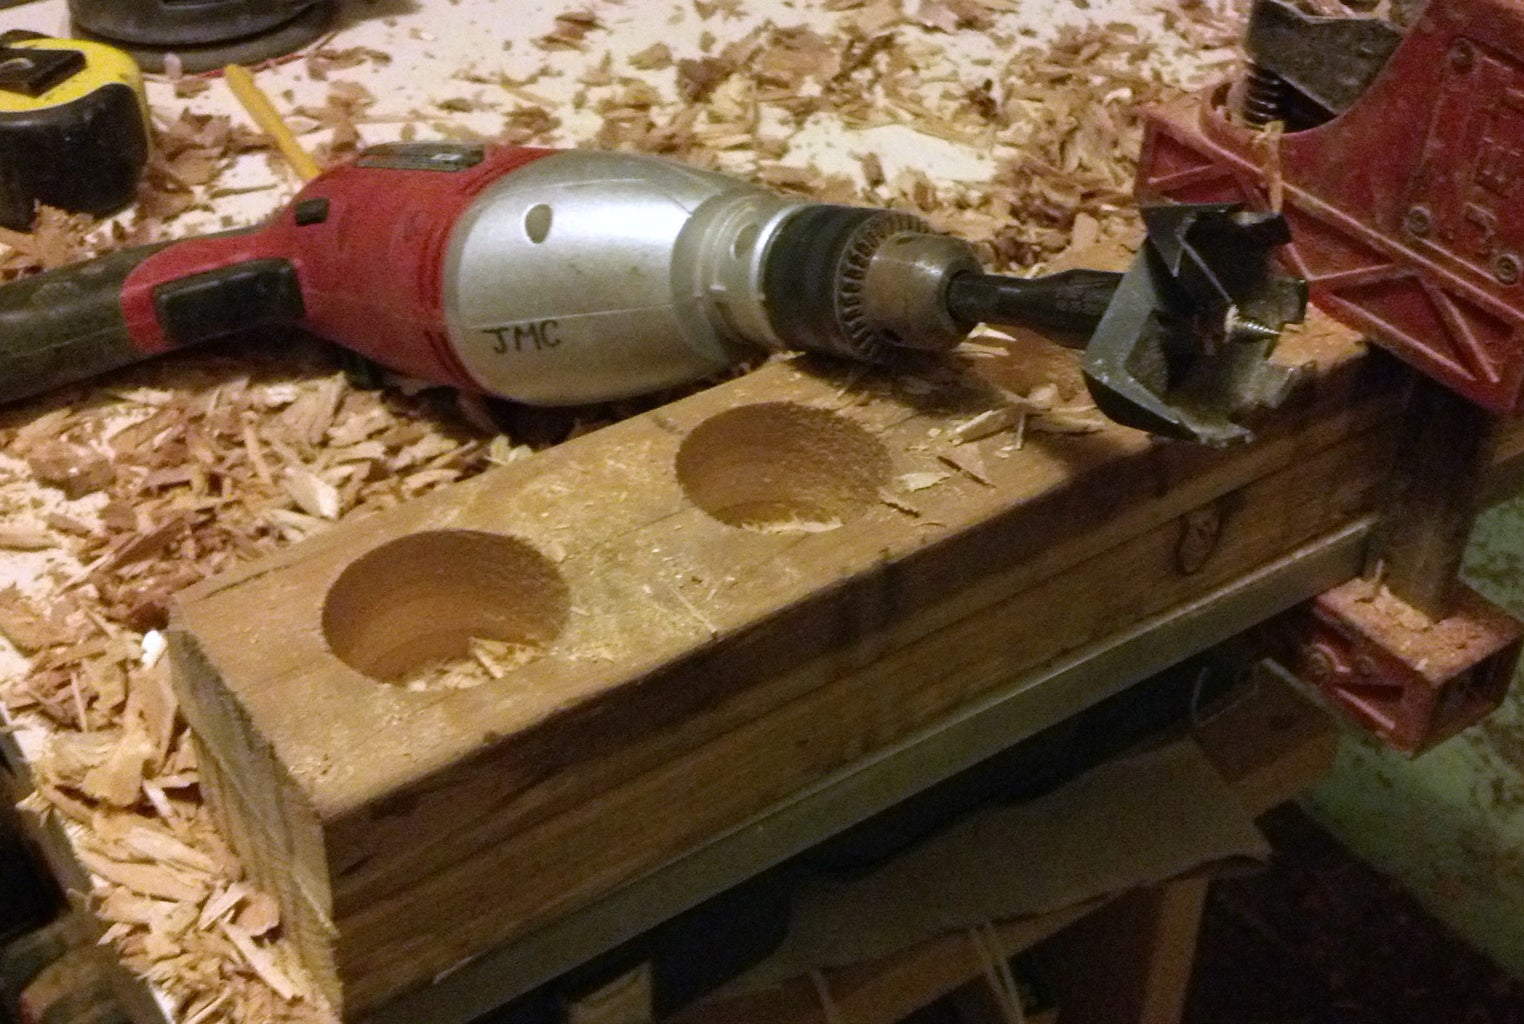 Glue, Drill, Cut, and Drill One More Time